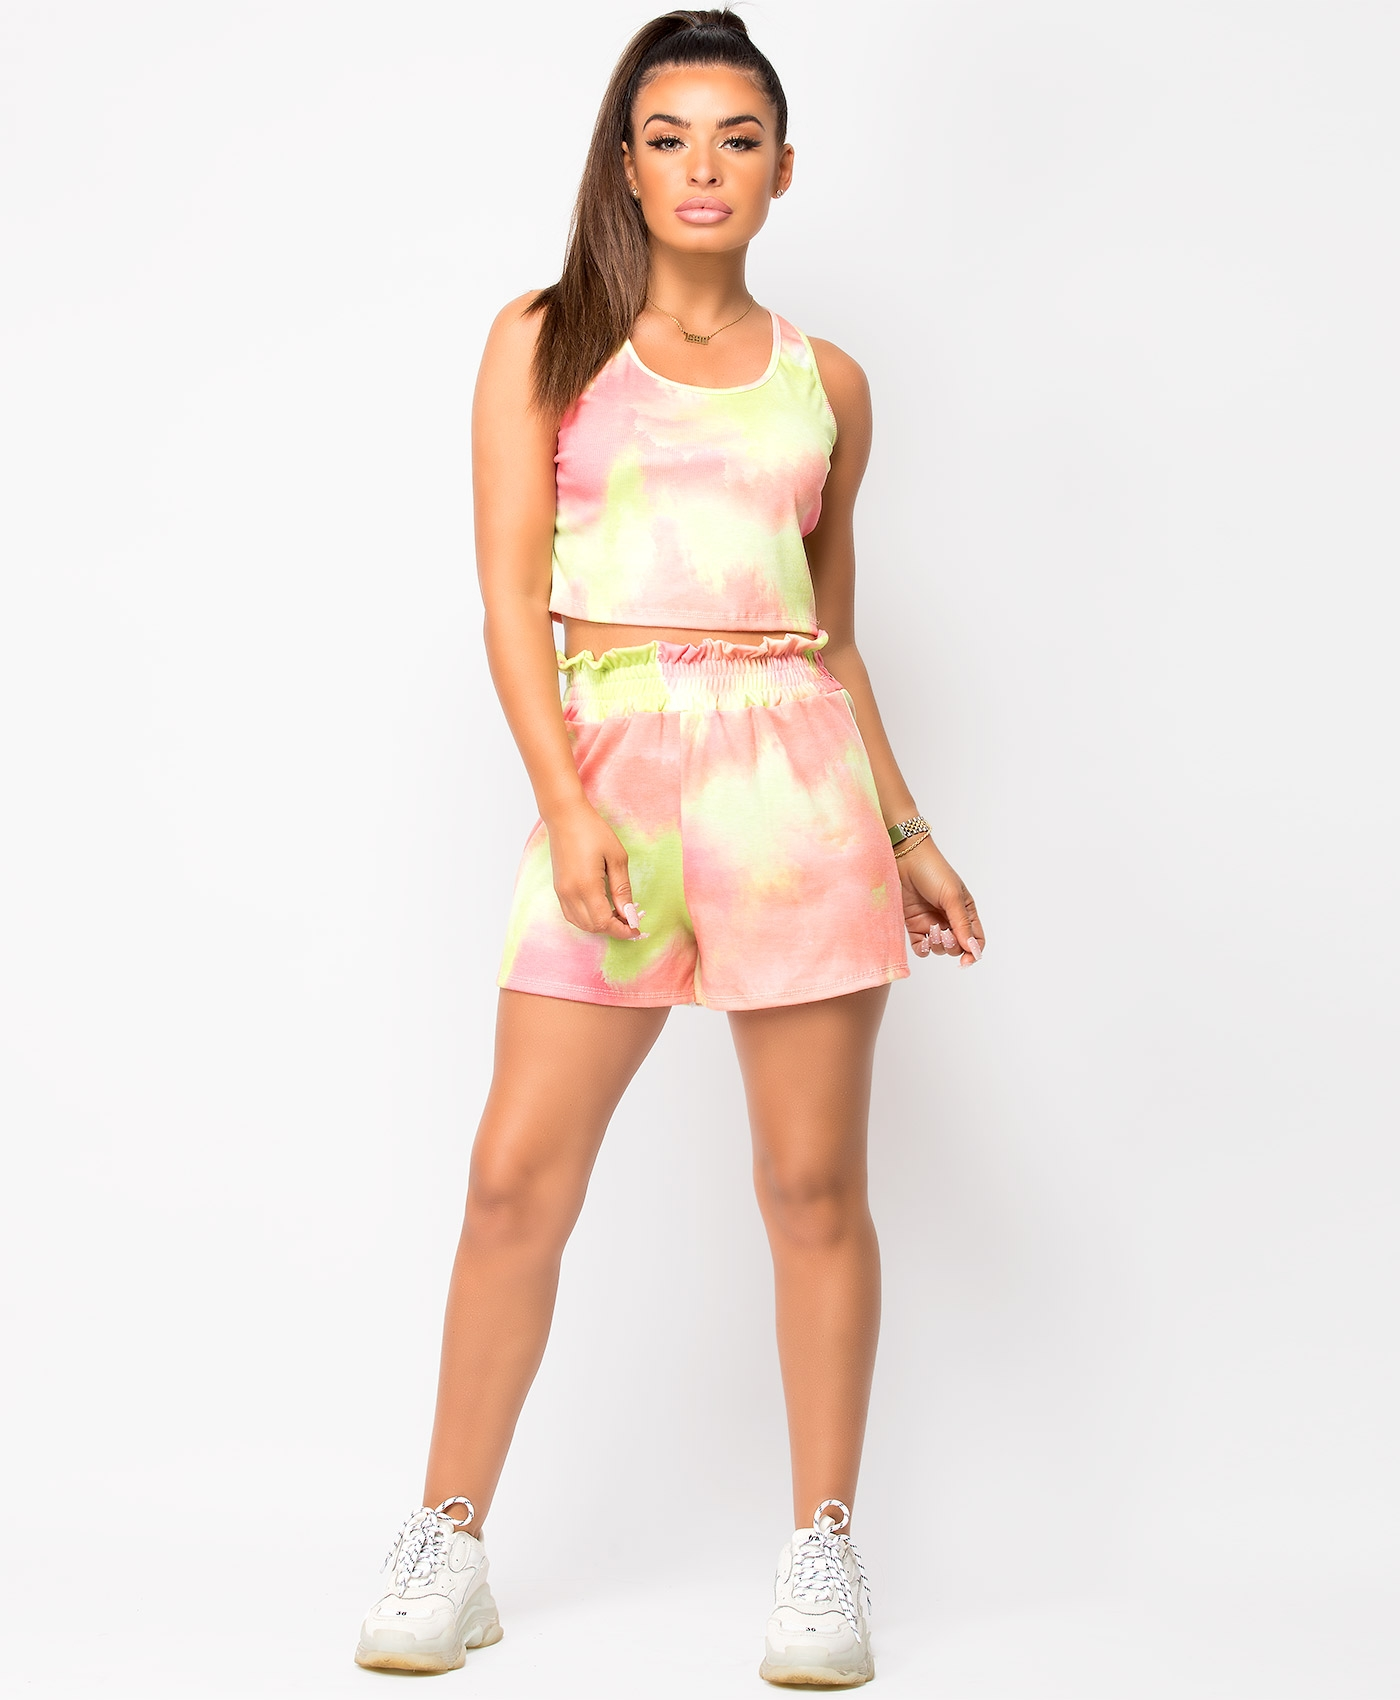 Coral-Tie-Dye-Paper-Bag-Shorts-&-Crop-Vest-Co-Ord-Loungewear-Set-1